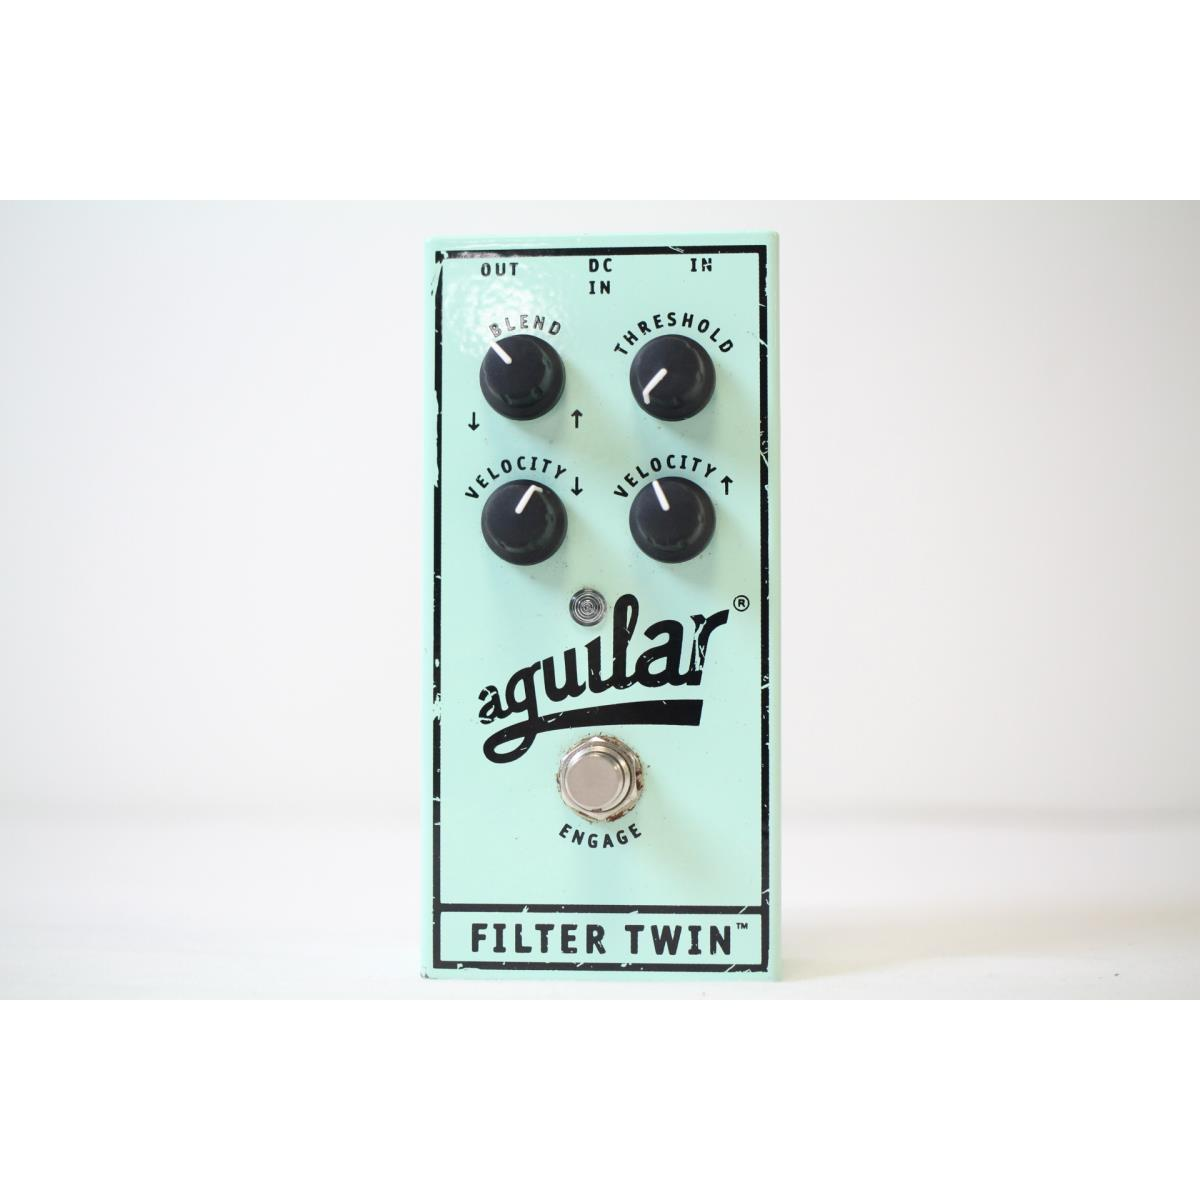 FILTER TWIN【中古】